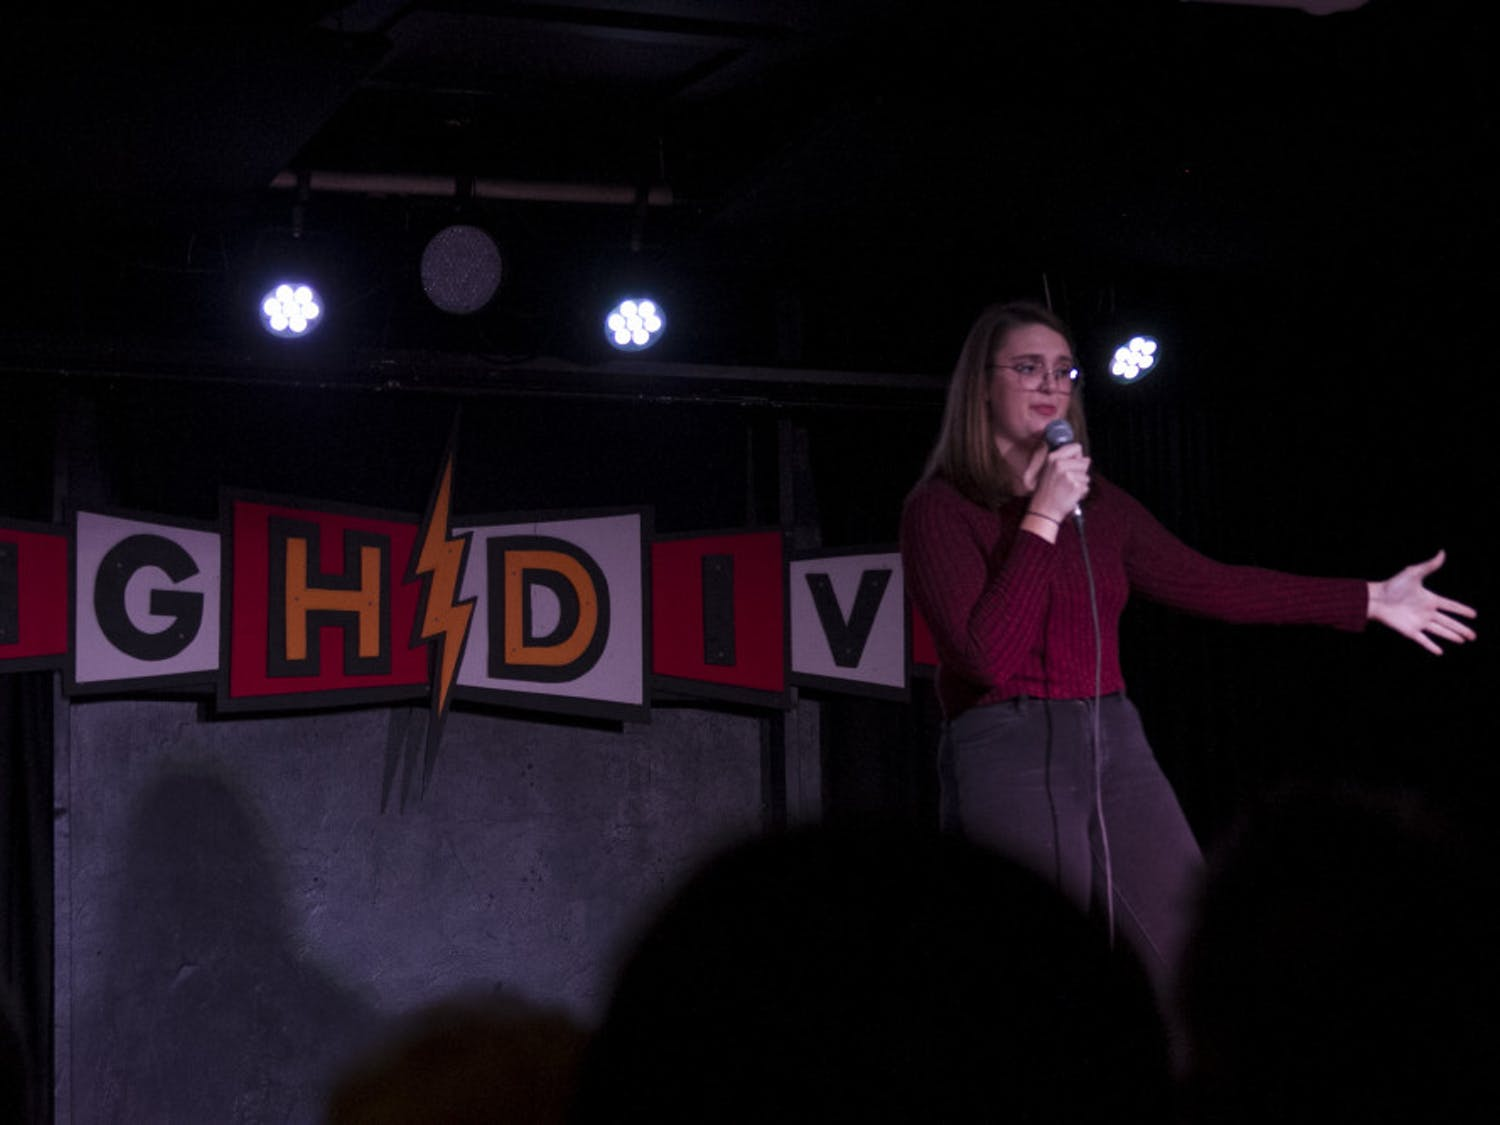 Alainna Whatley performs her standup set about a life changing experience she had at 13 years old in the Walmart bathroom.